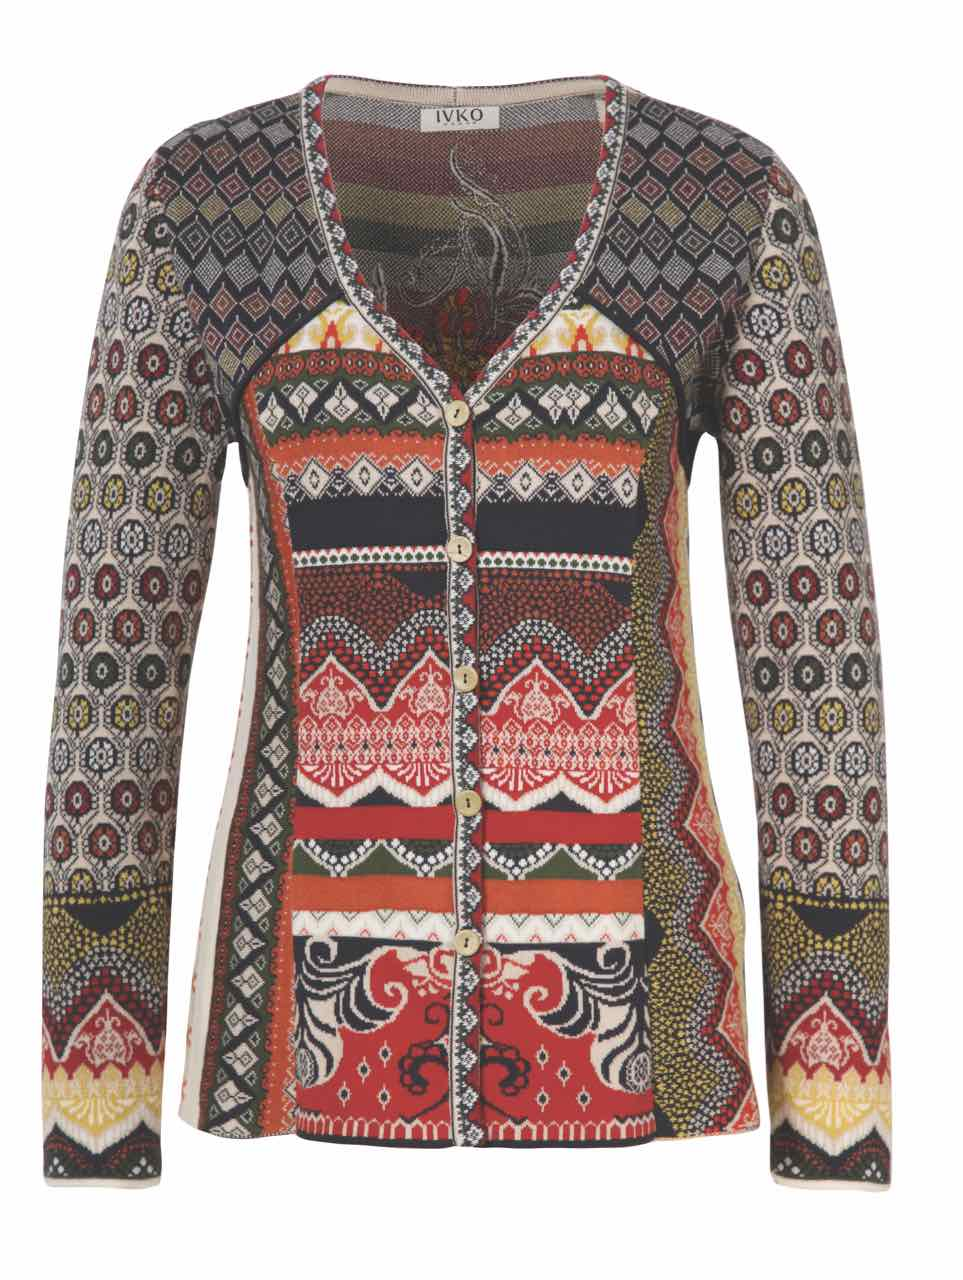 IVKO Jacket with Embroidery